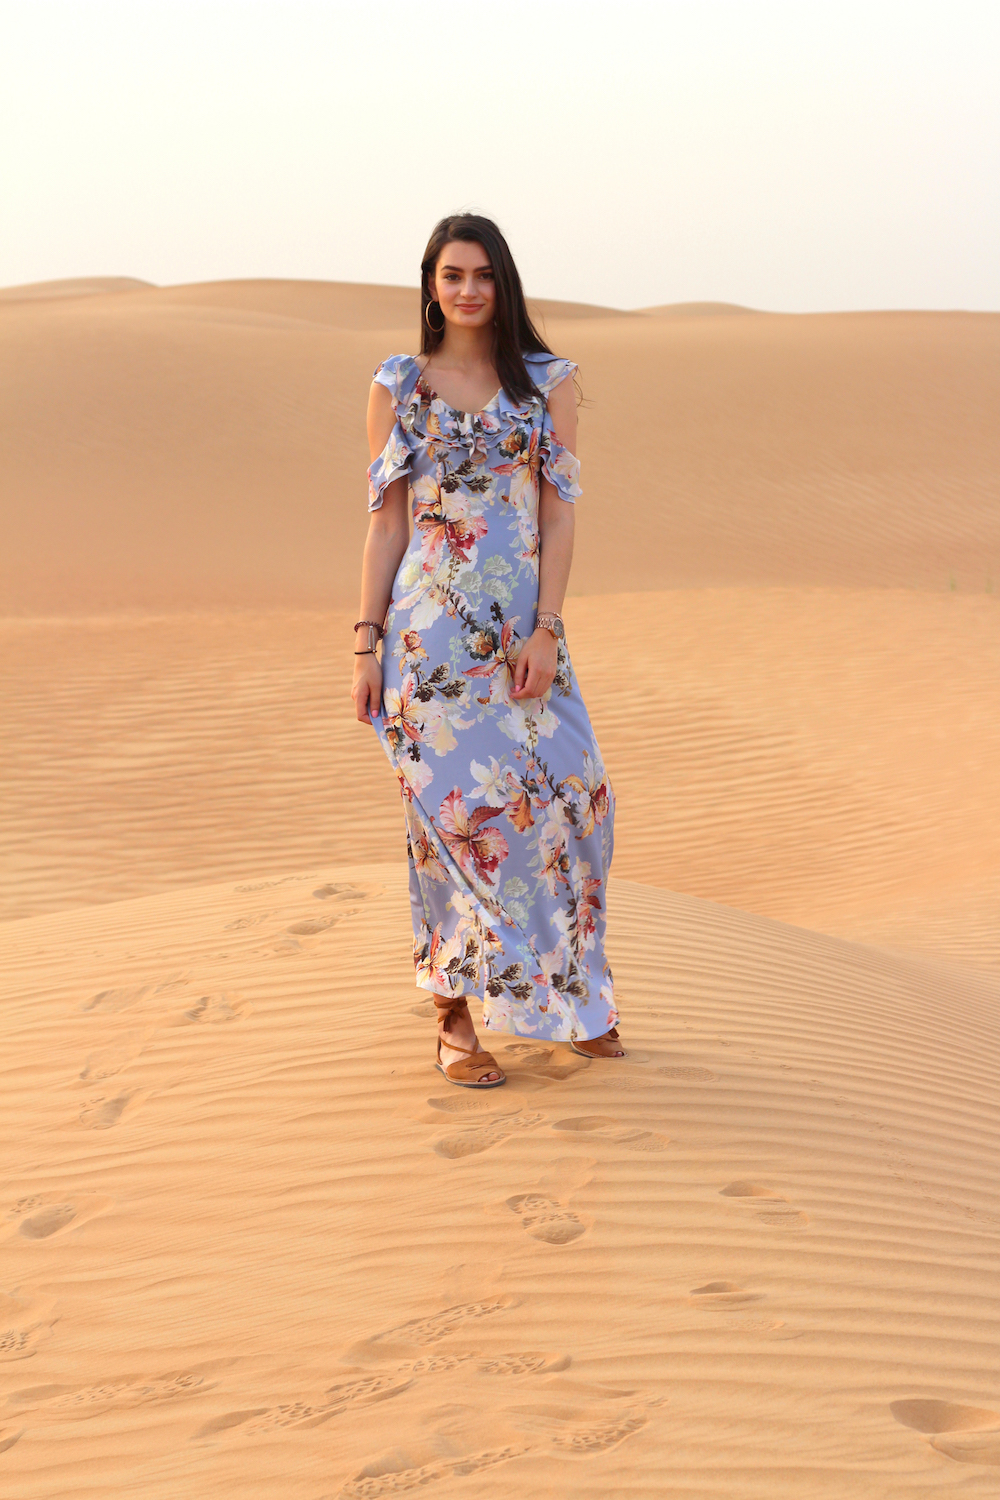 peexo travel blogger desert dubai